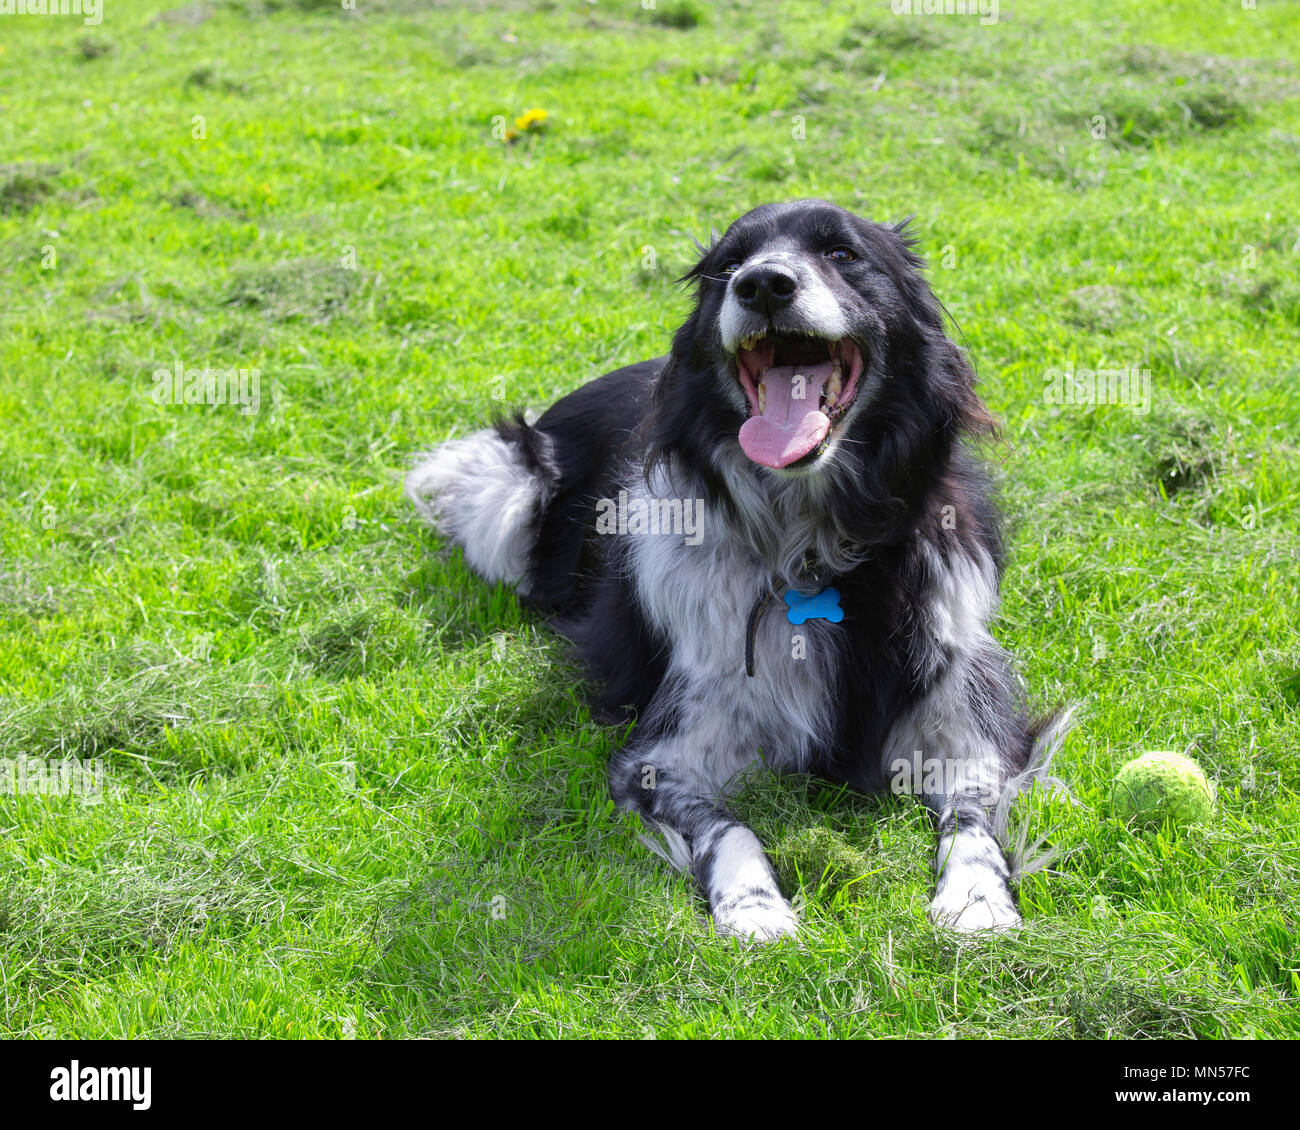 Dog in the park - Stock Image